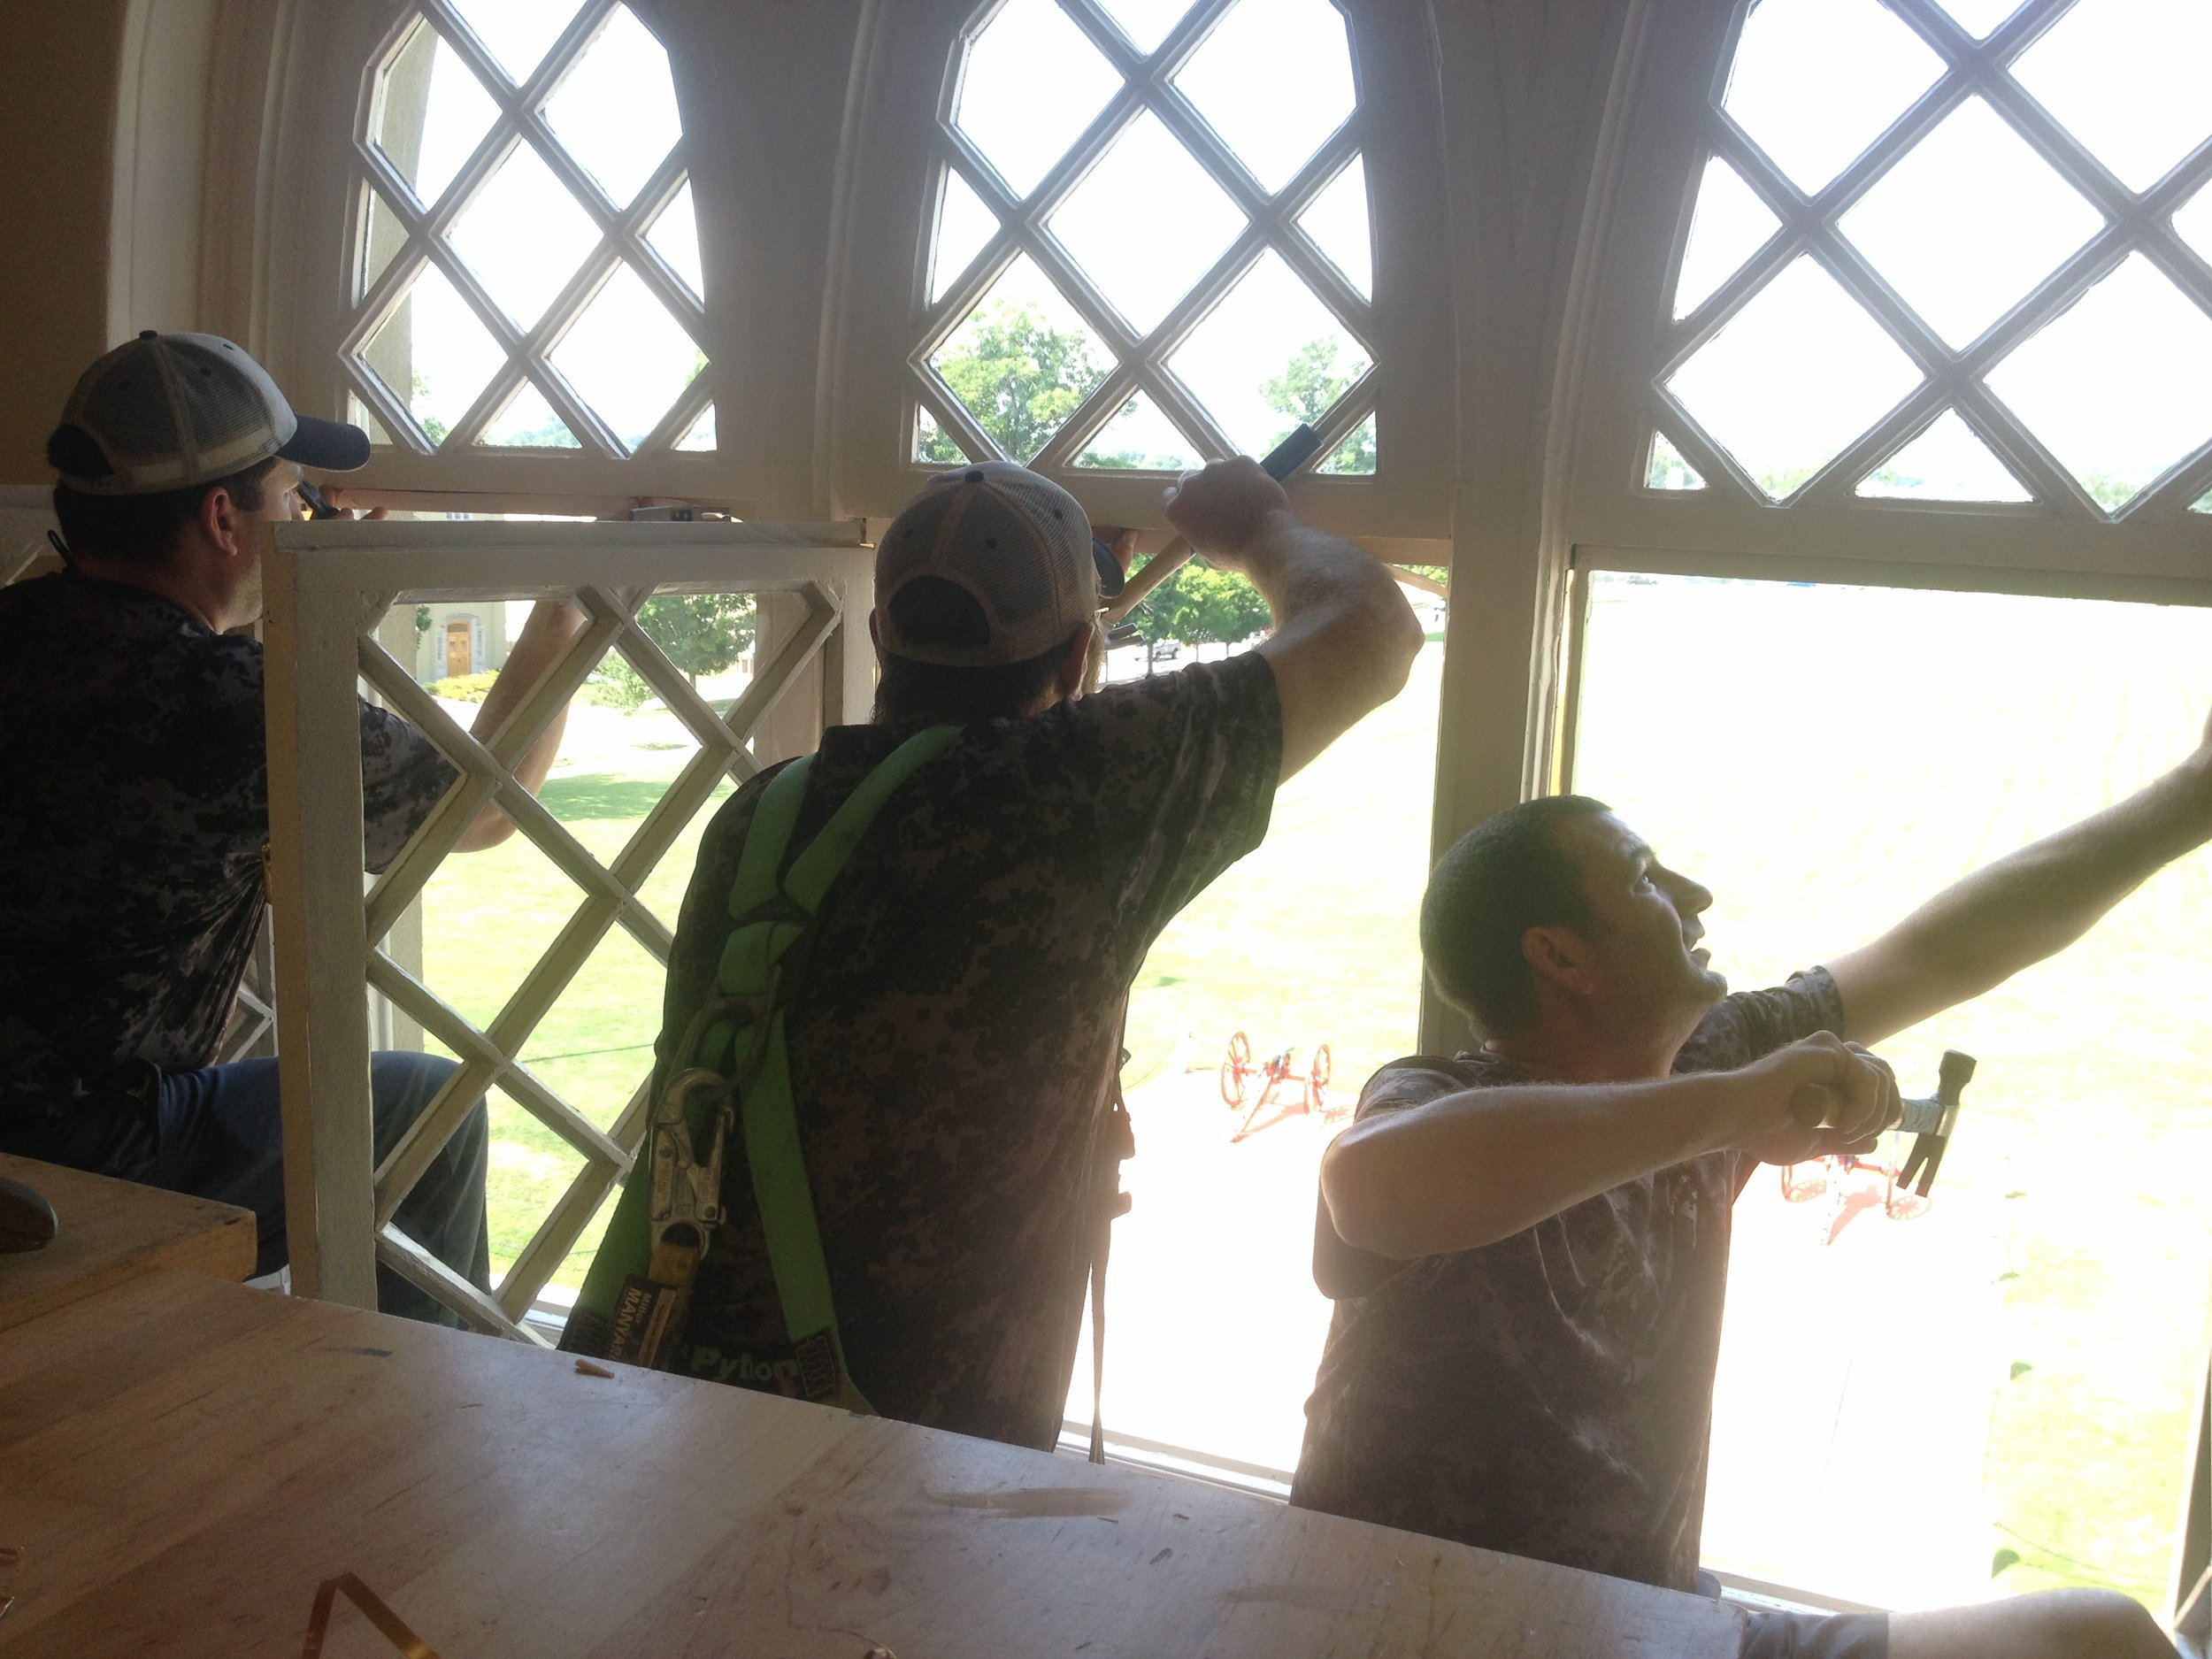 VMI employees were trained in basic installation and window maintenance, like installing copper weatherstripping.